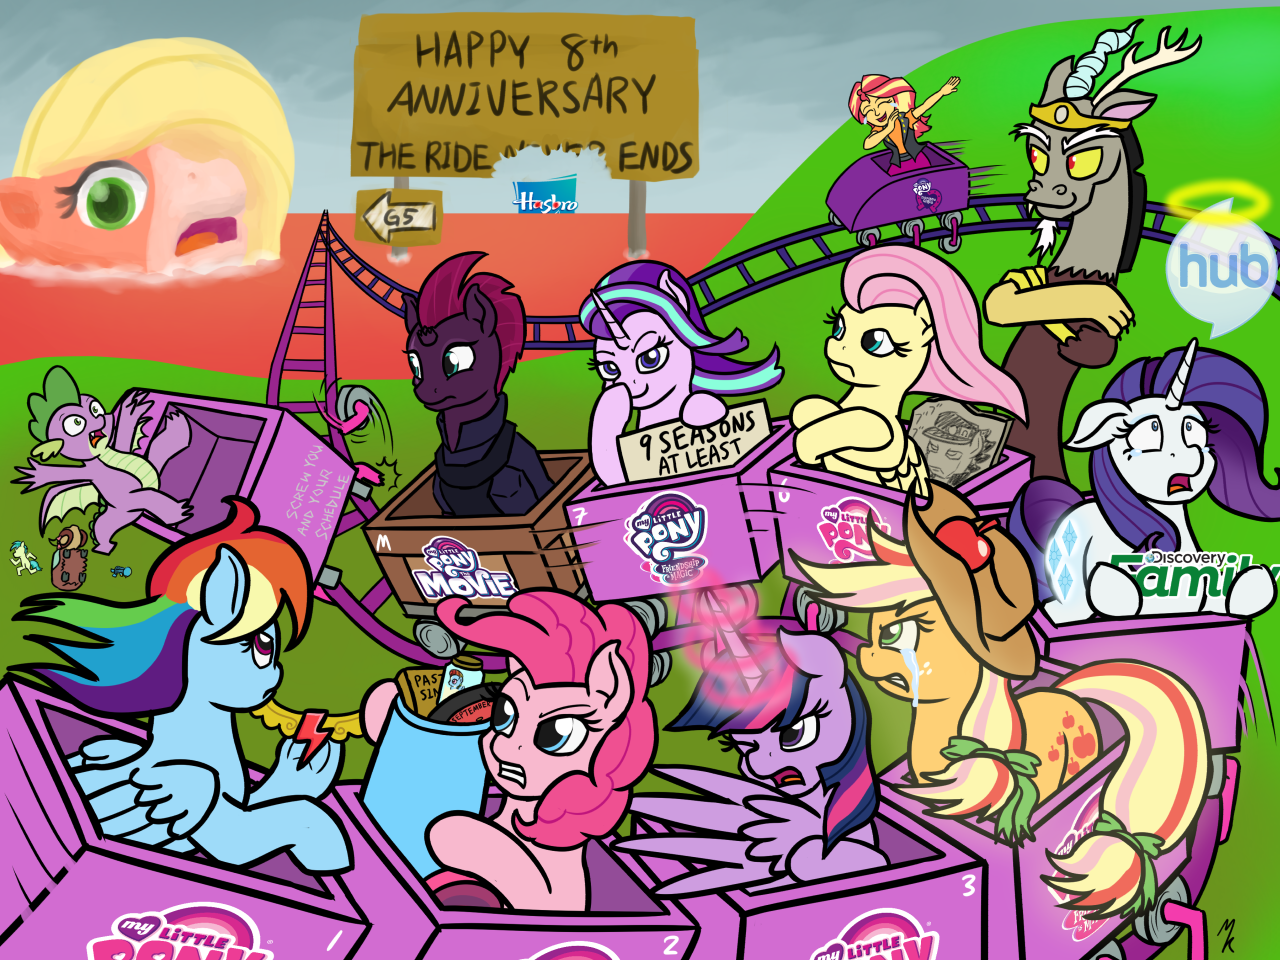 Hey, it's 8th anniversary for MLP:FiM Boy, there's only 1